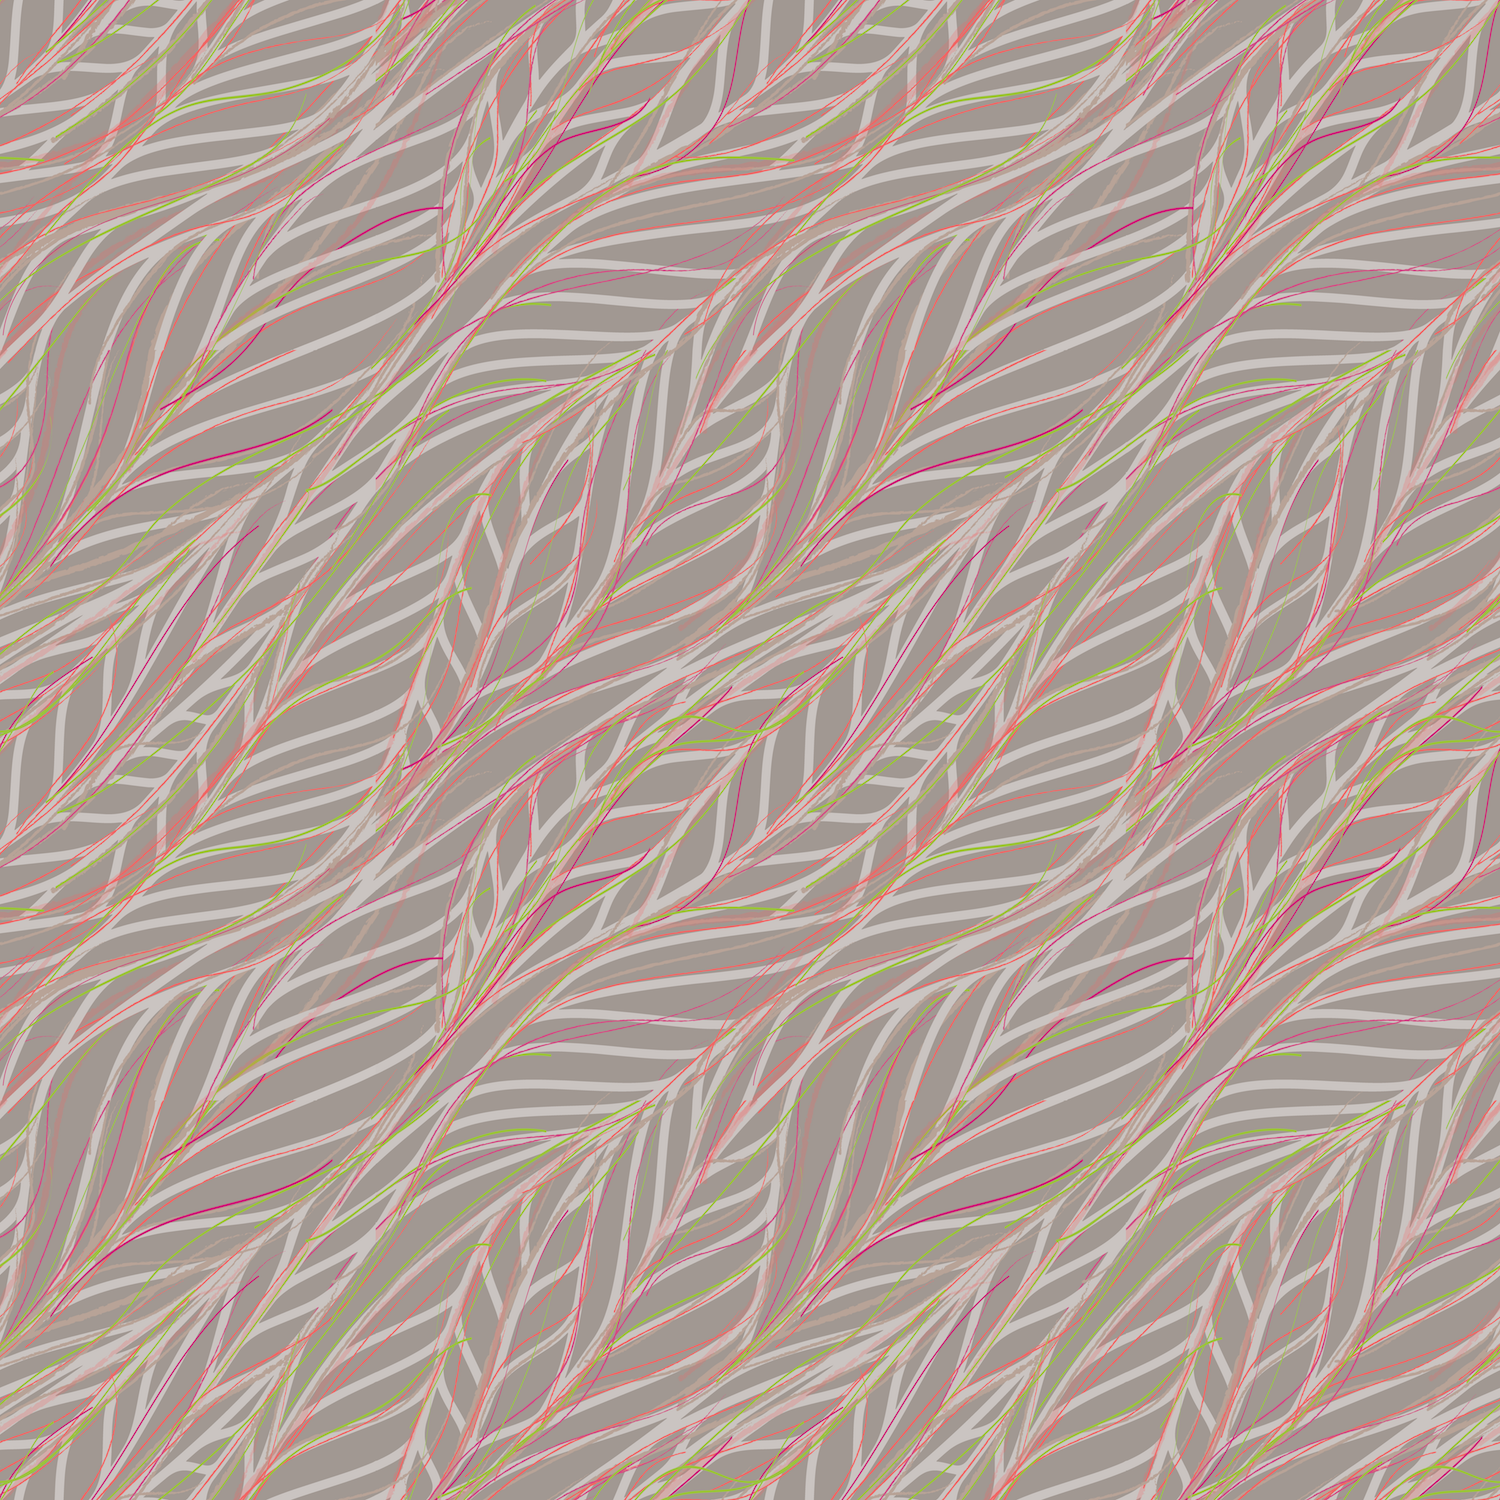 Woven-Leaves-Pink-and-greeen-with-grey-back for website.png